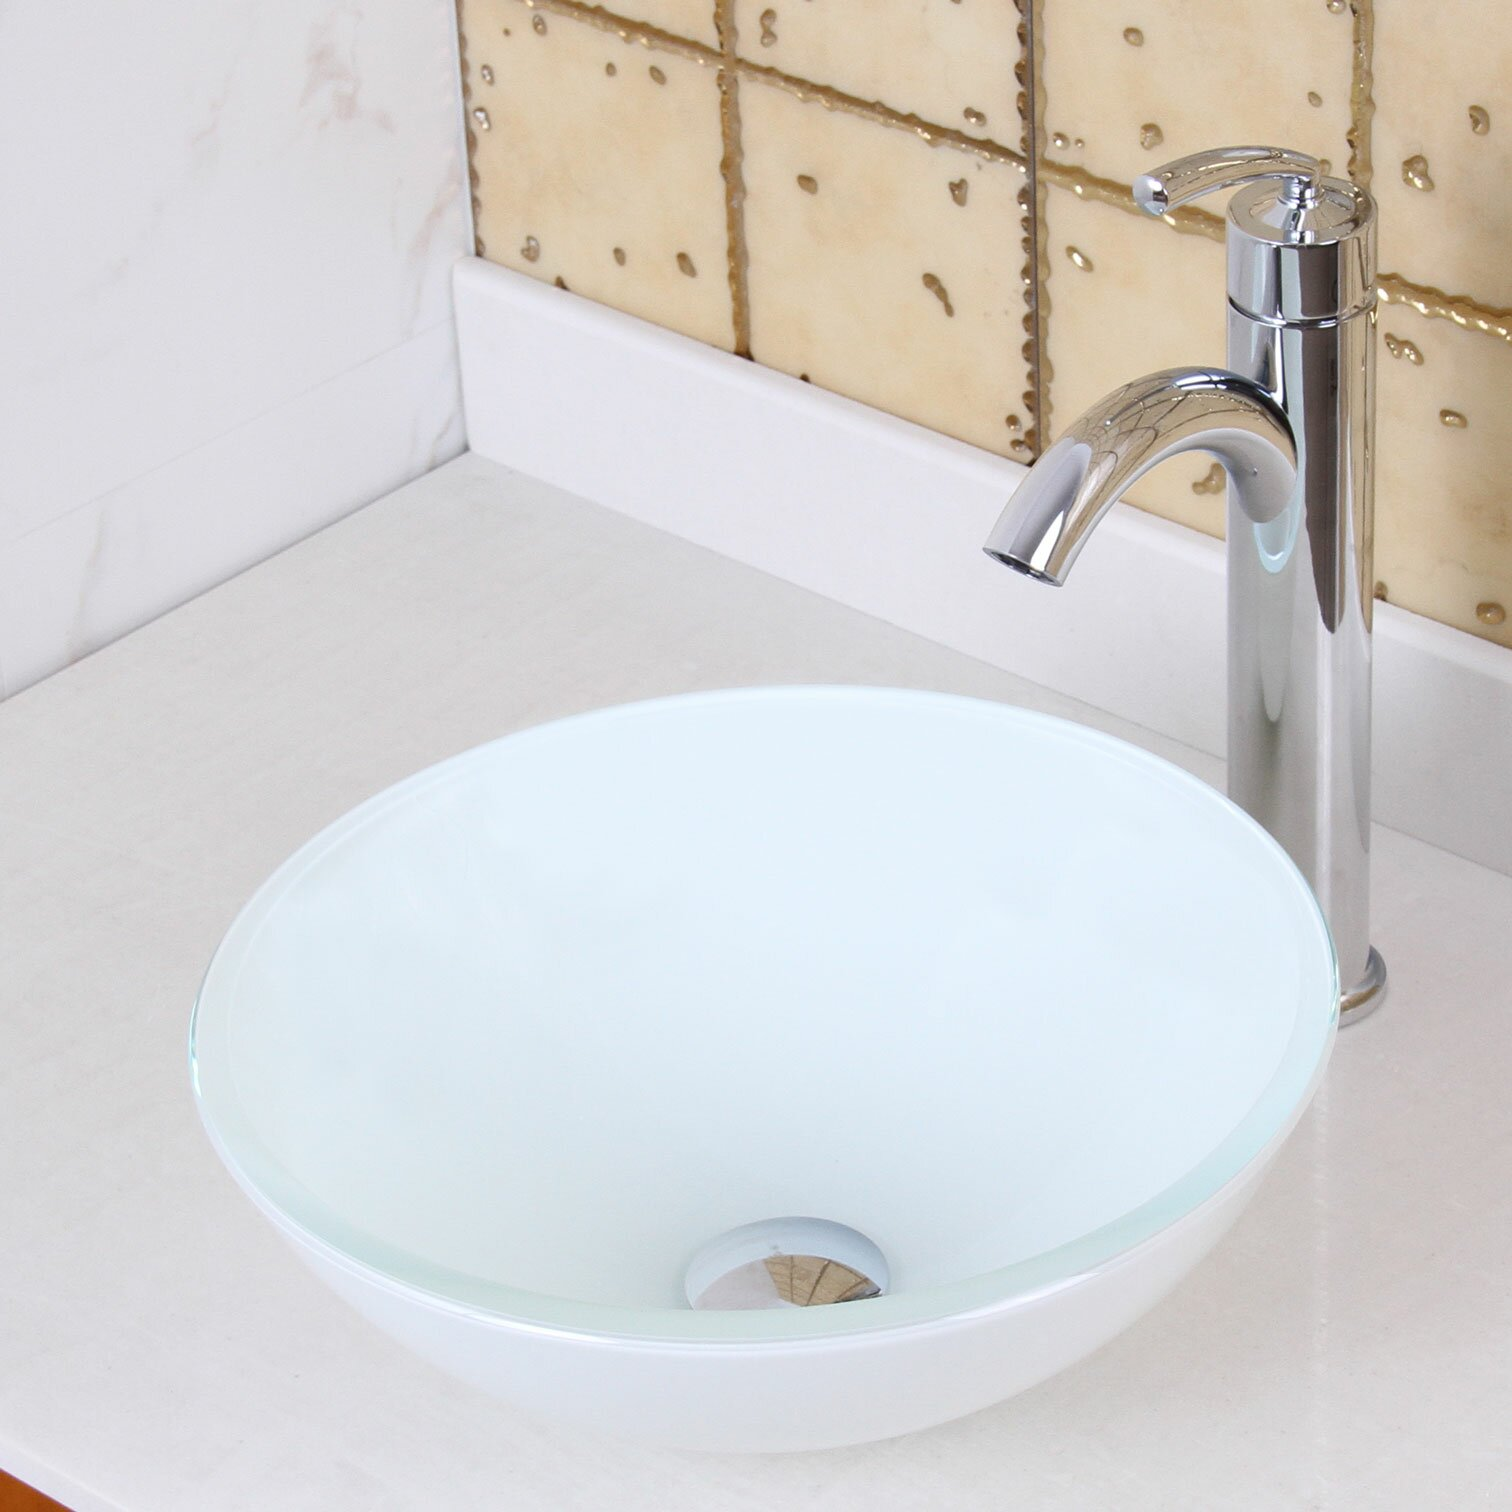 Bathroom Tempered Glass Vessel Sink: Elimaxs Elite Double Layered White Tempered Round Glass